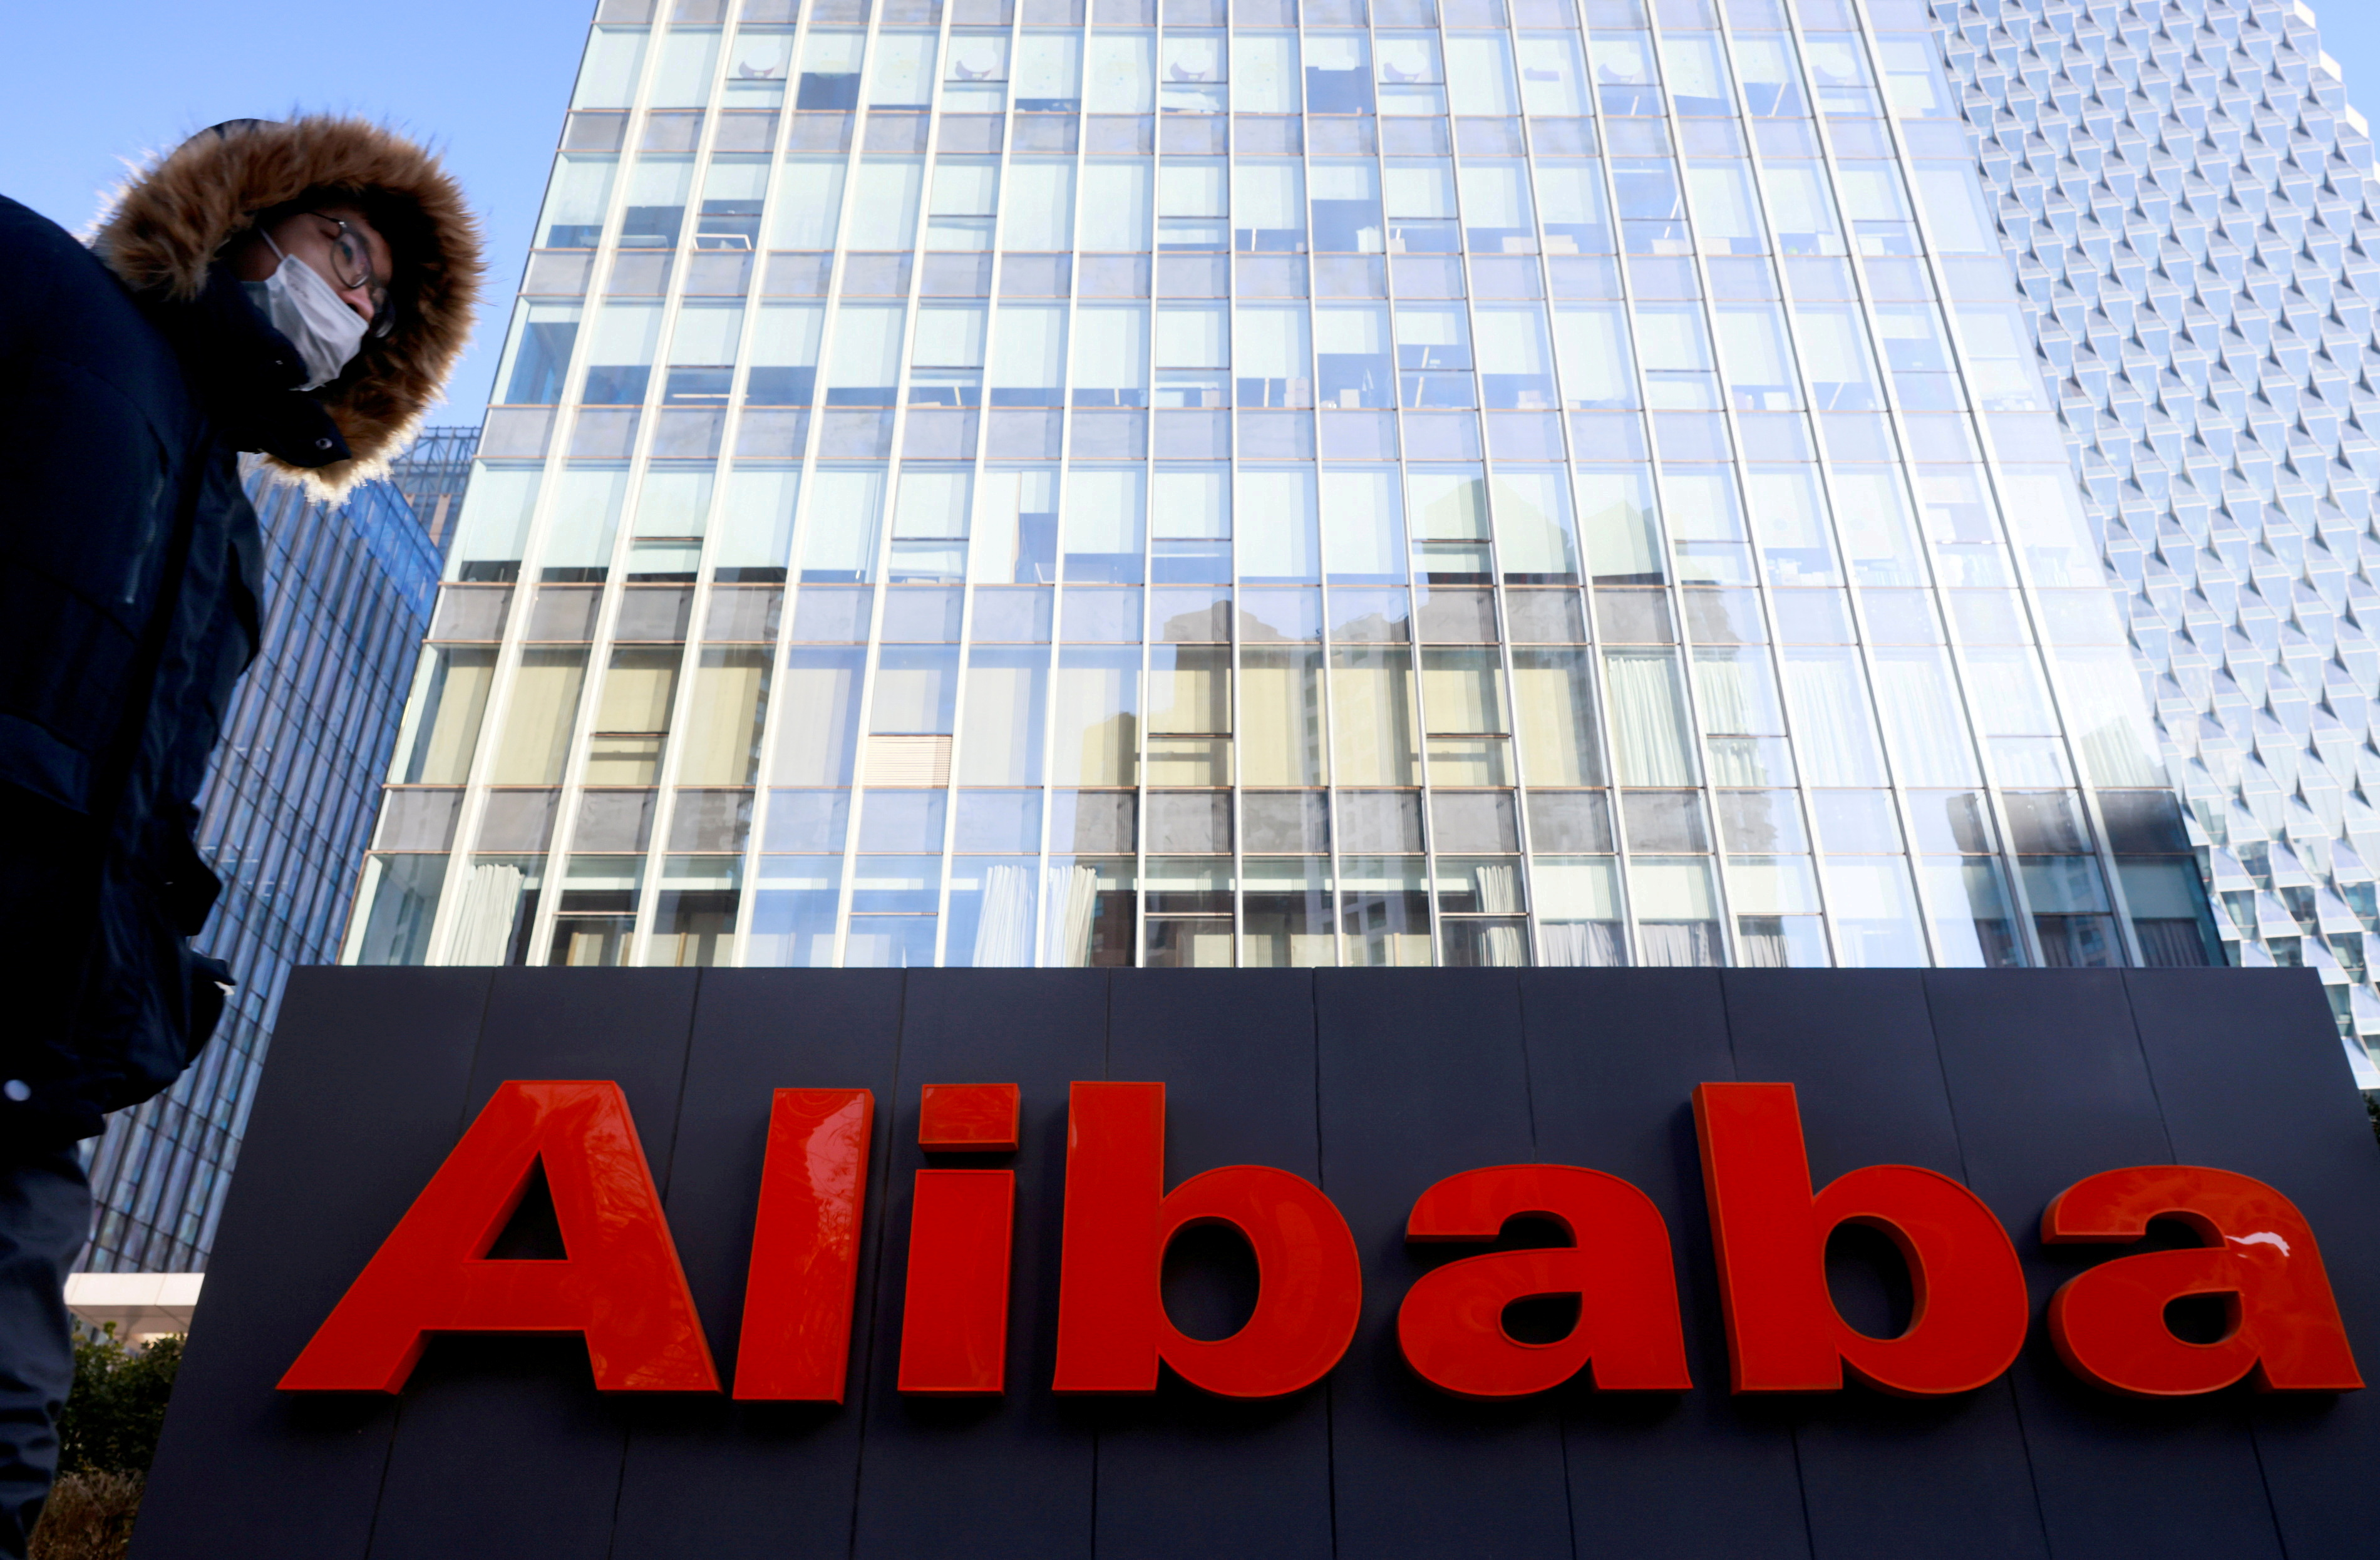 The logo of Alibaba Group is seen at its office in Beijing, China January 5, 2021. REUTERS/Thomas Peter/File Photo/File Photo